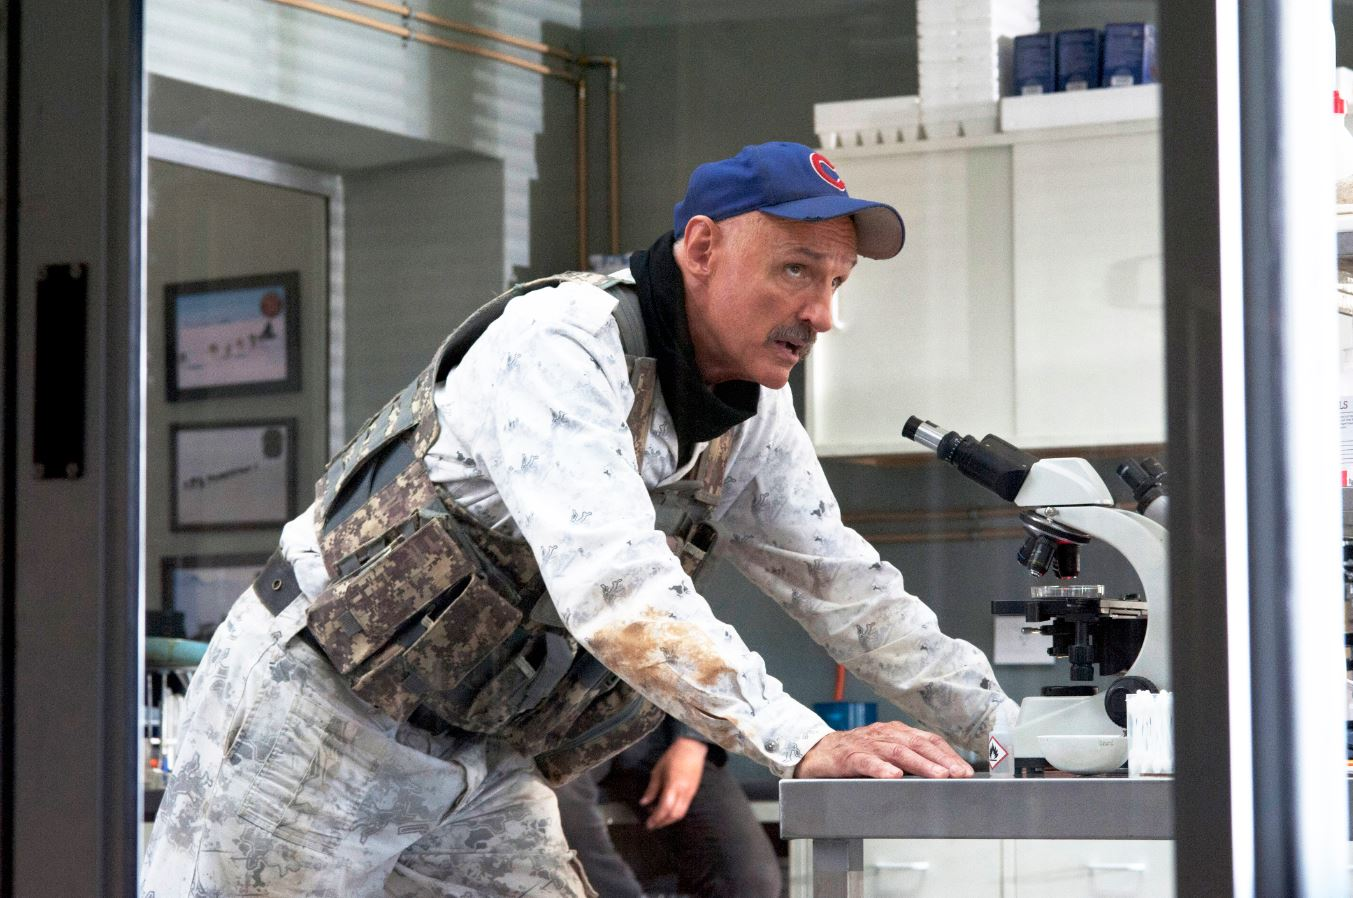 Photo courtesy Universal Pictures After six films and a television series, actor Michael Gross has embraced his character Burt Gummer in the Tremors franchise.